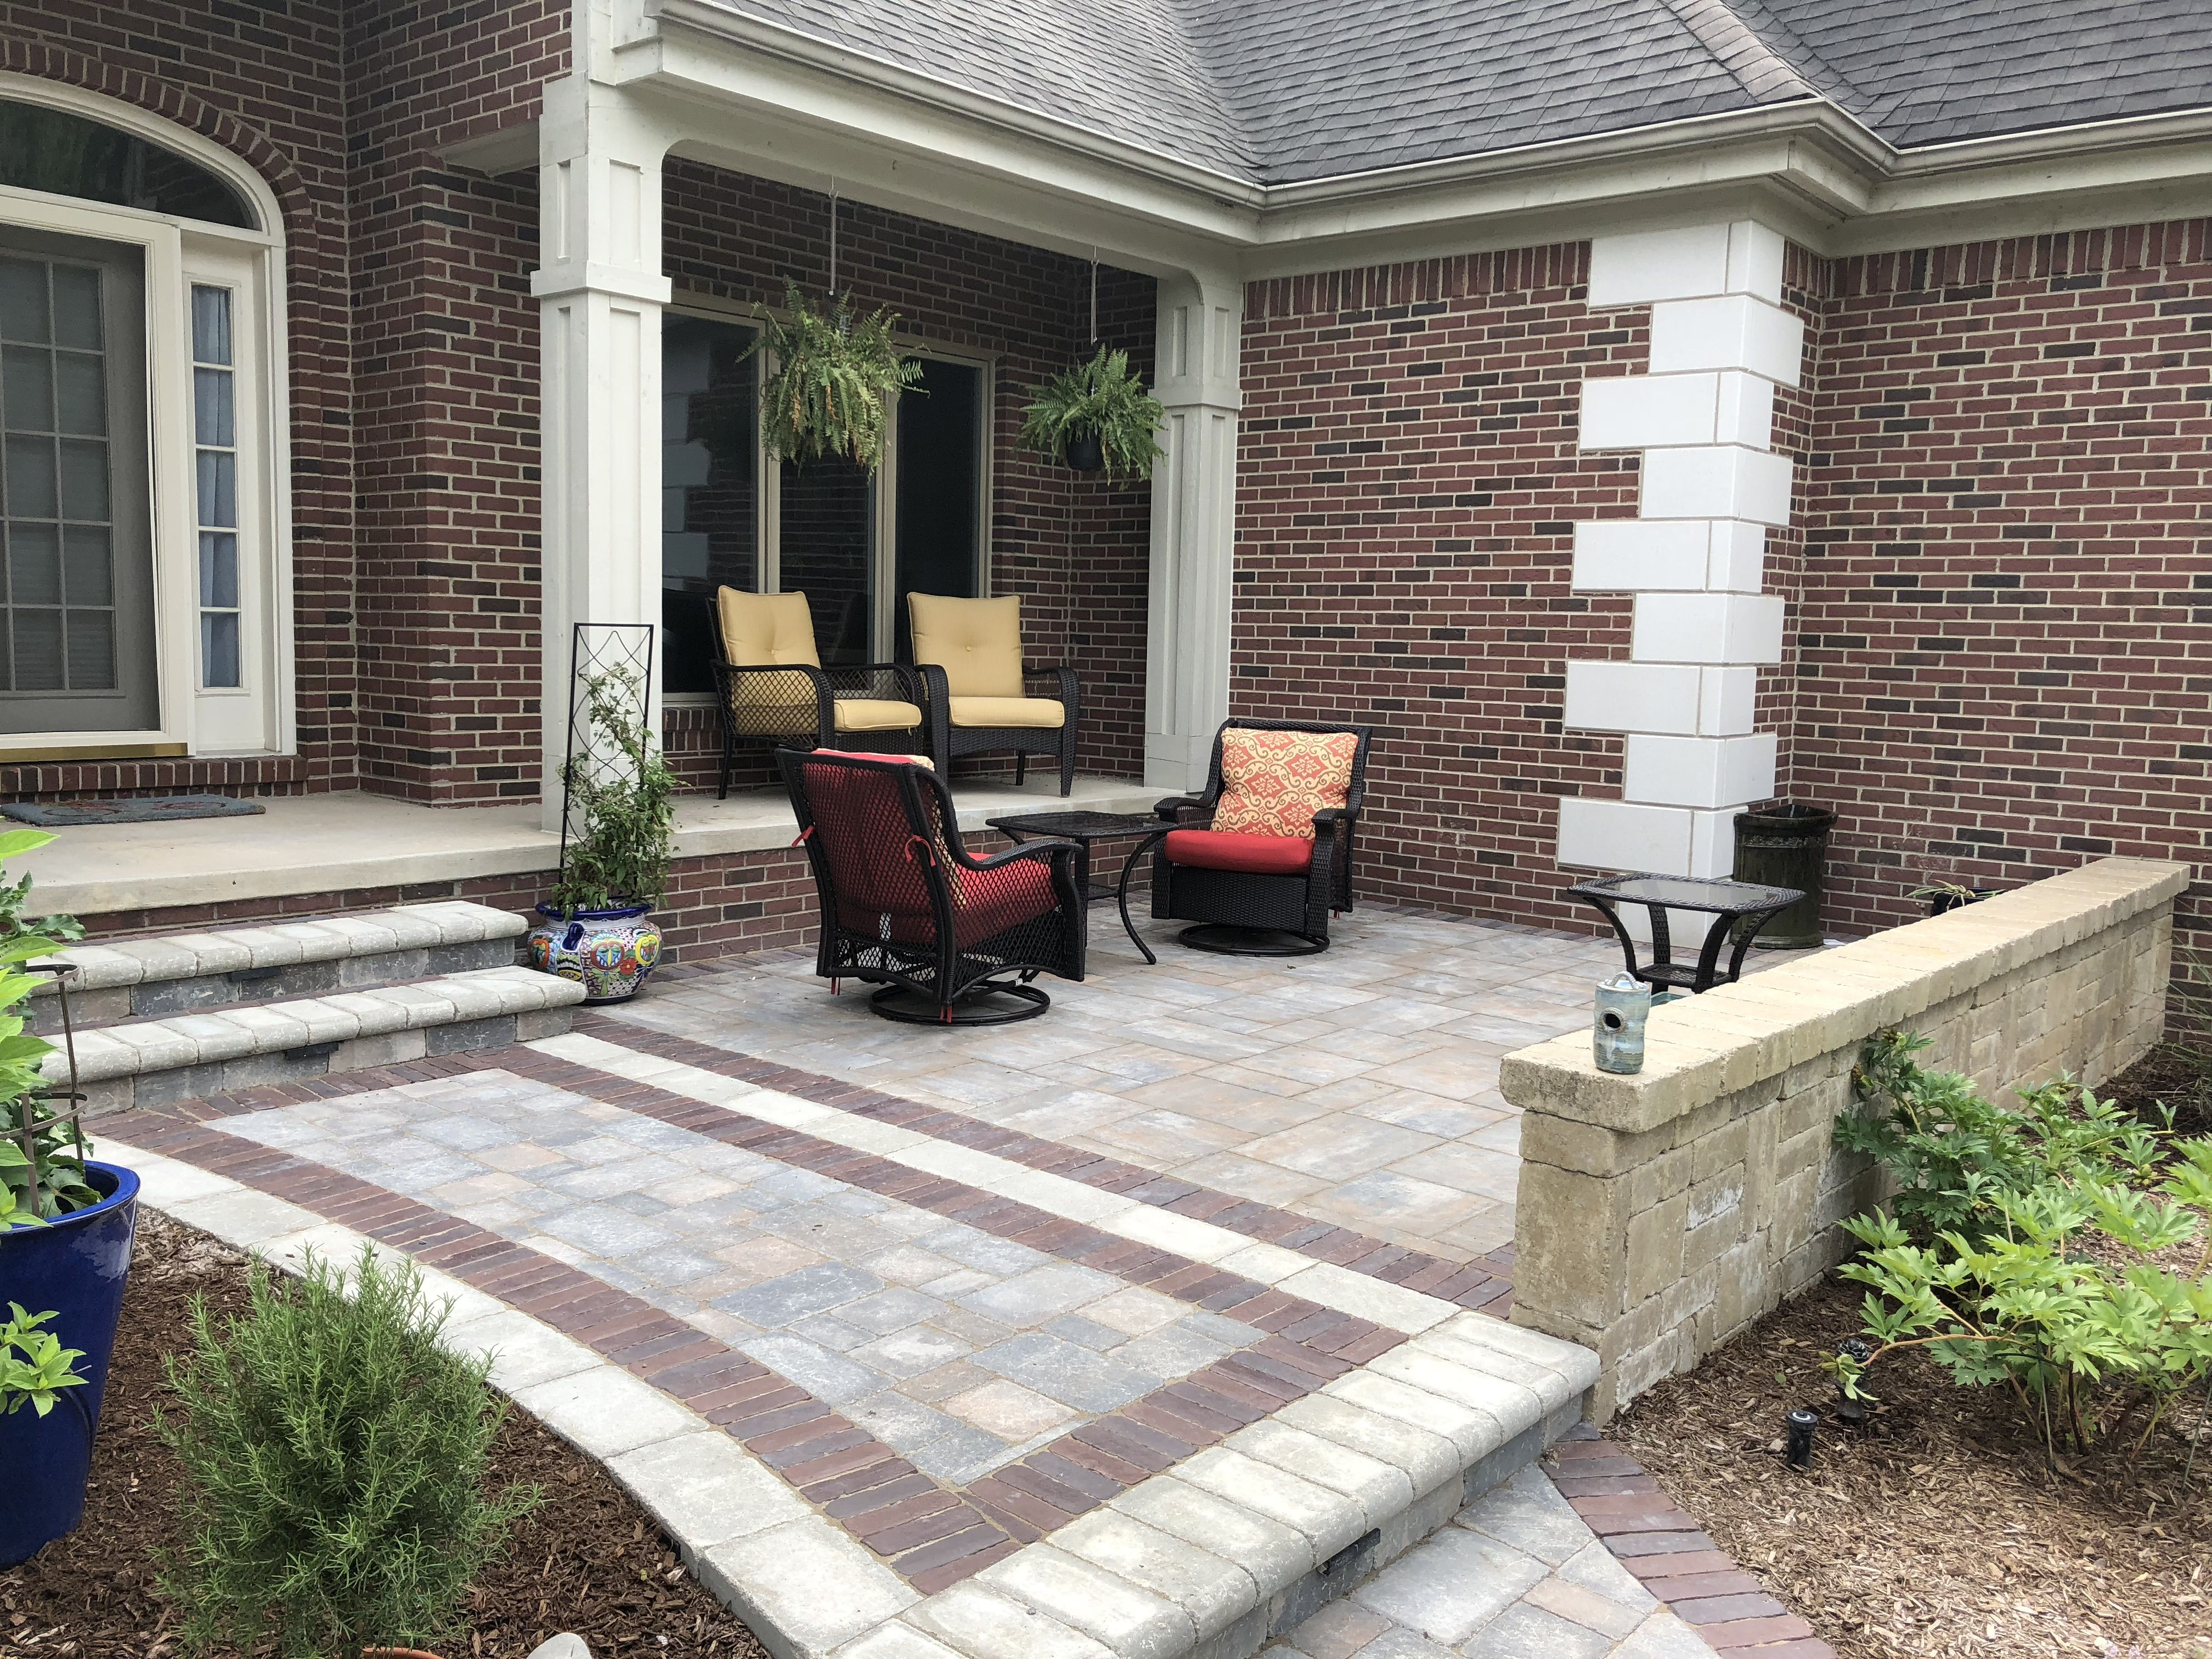 Paver Installation Cost Patio Paving Stones Backyard Designs For Patios Patterns Design Ideas Companies Rl Lg Encouragement In Small To Make Your Garden Bri Tips